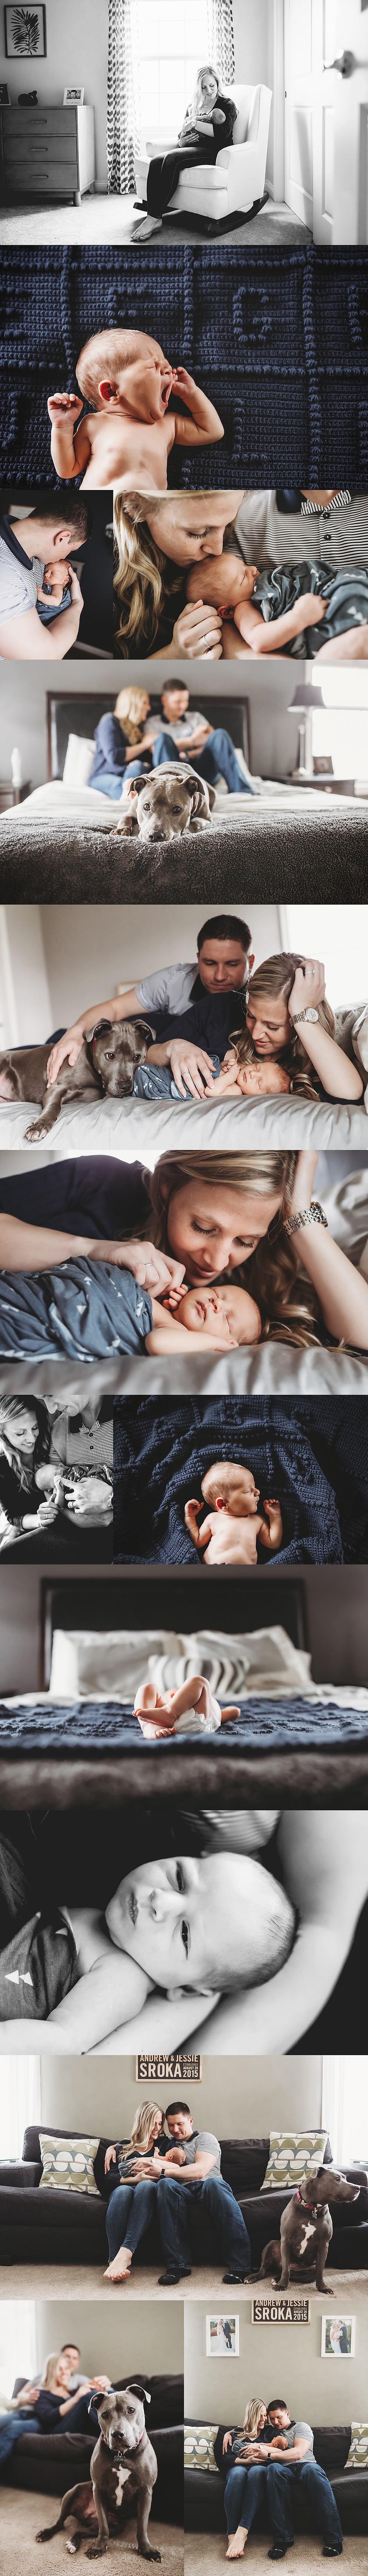 Fishers Indiana Newborn Photographer, Alex Morris Design